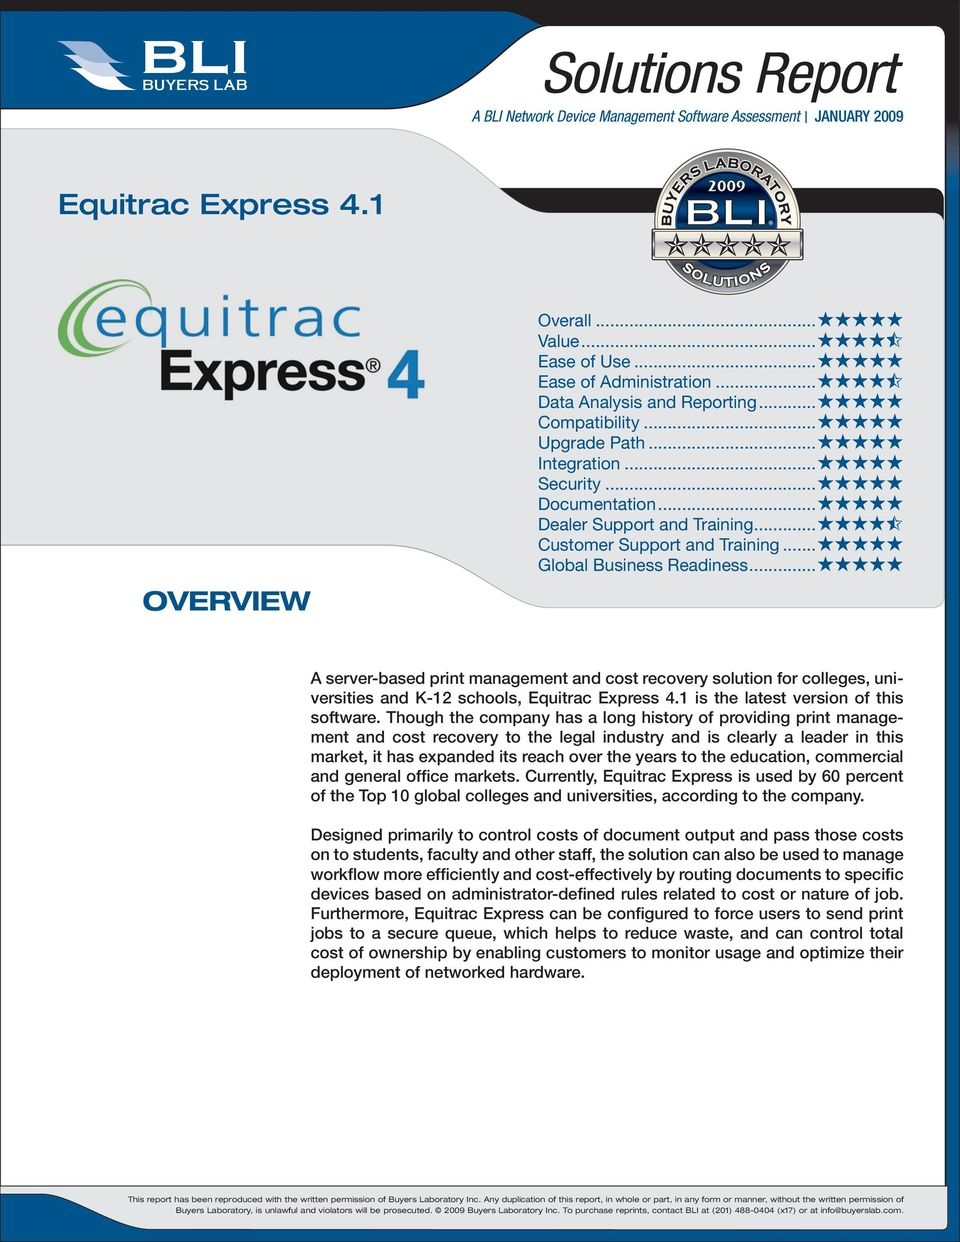 .. Global Business Readiness... OVERVIEW A server-based print management cost recovery solution for colleges, universities K-12 schools, Equitrac Express 4.1 is the latest version of this software.